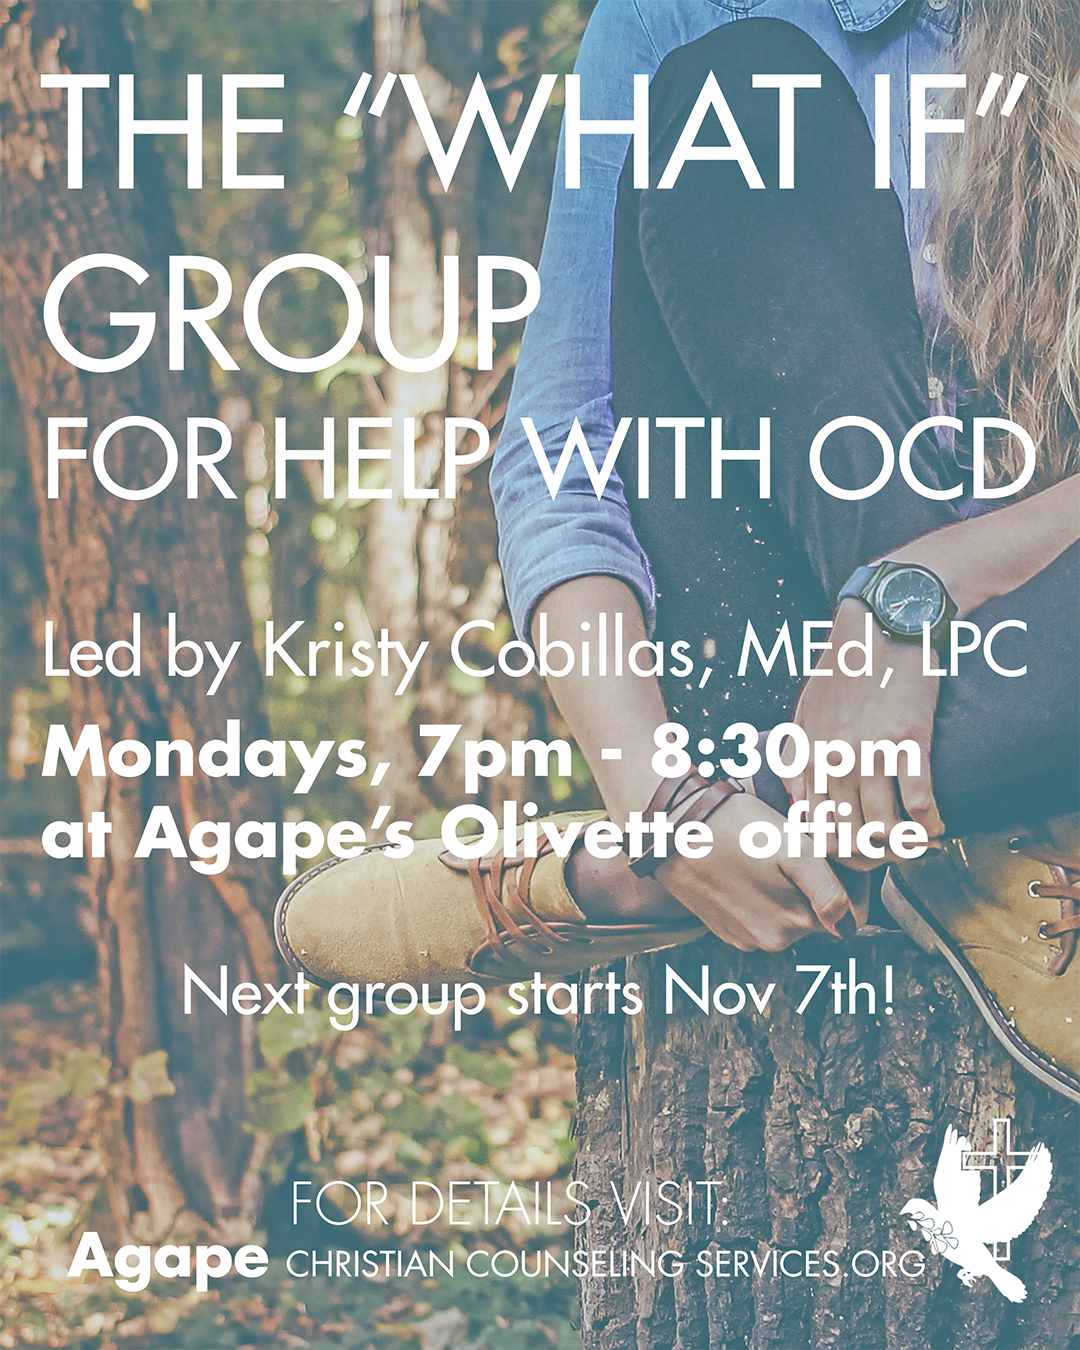 Support group for OCD/Anxiety disorders at Agape Christian Counseling Services St Louis MO. Contact Kristy Cobillas LPC for details 314-643-8506